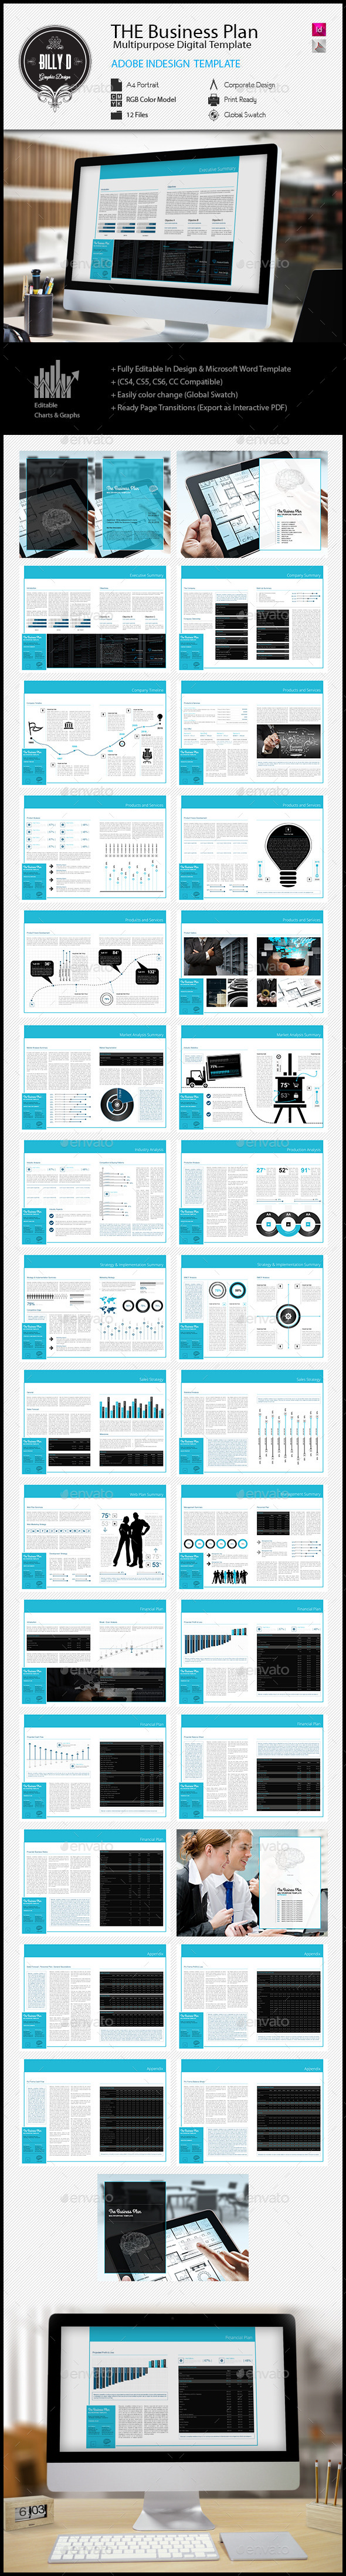 GraphicRiver THE Business Plan Multipurpose Digital Template 11918802